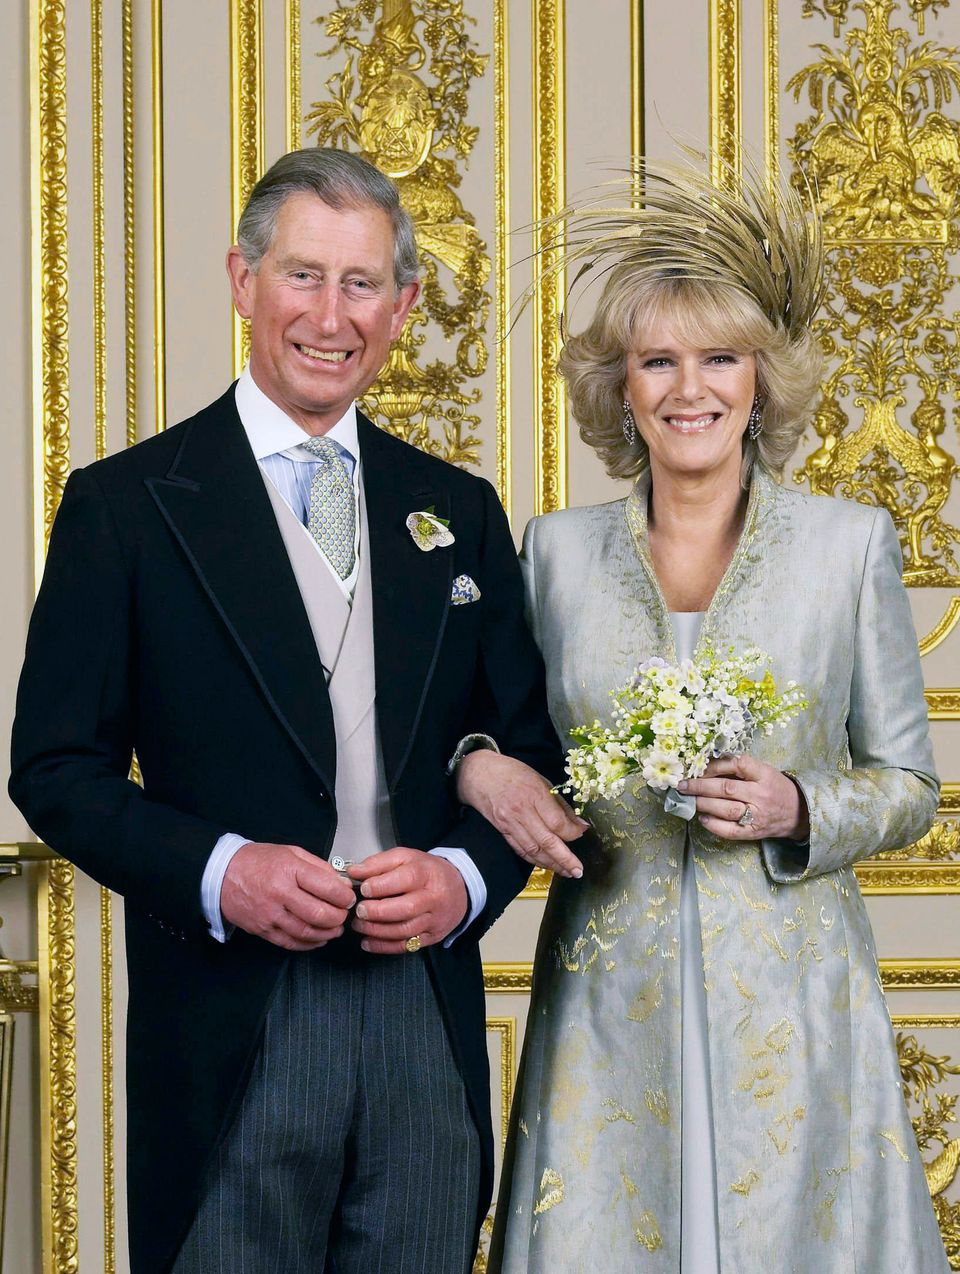 Prince Charles and the Duchess of Cornwall pose for their official wedding photo in the White Drawing...